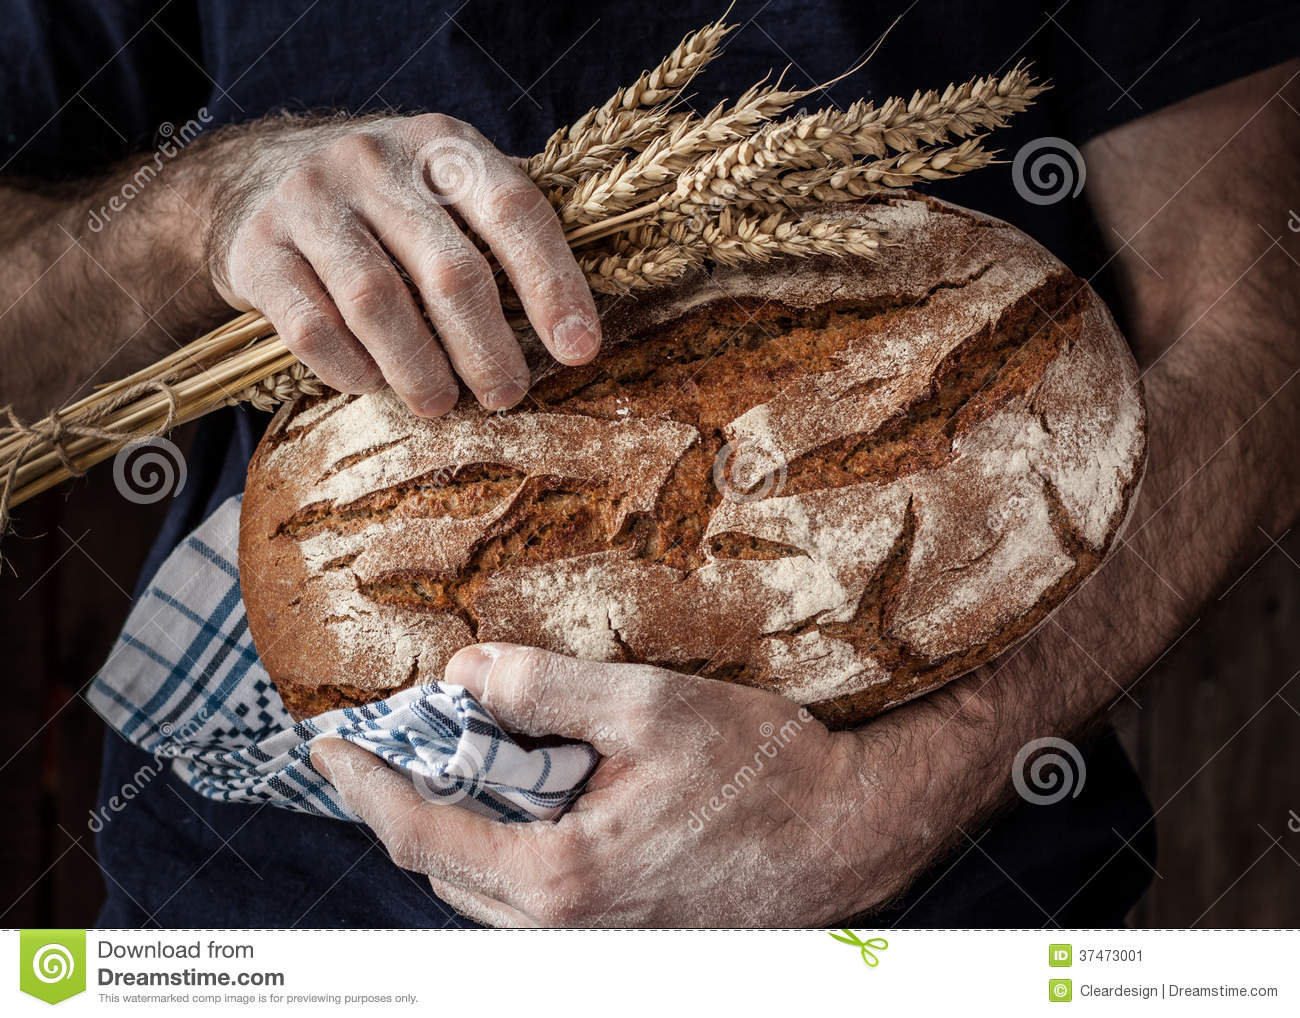 Baker man holding rustic loaf of bread and wheat in hands